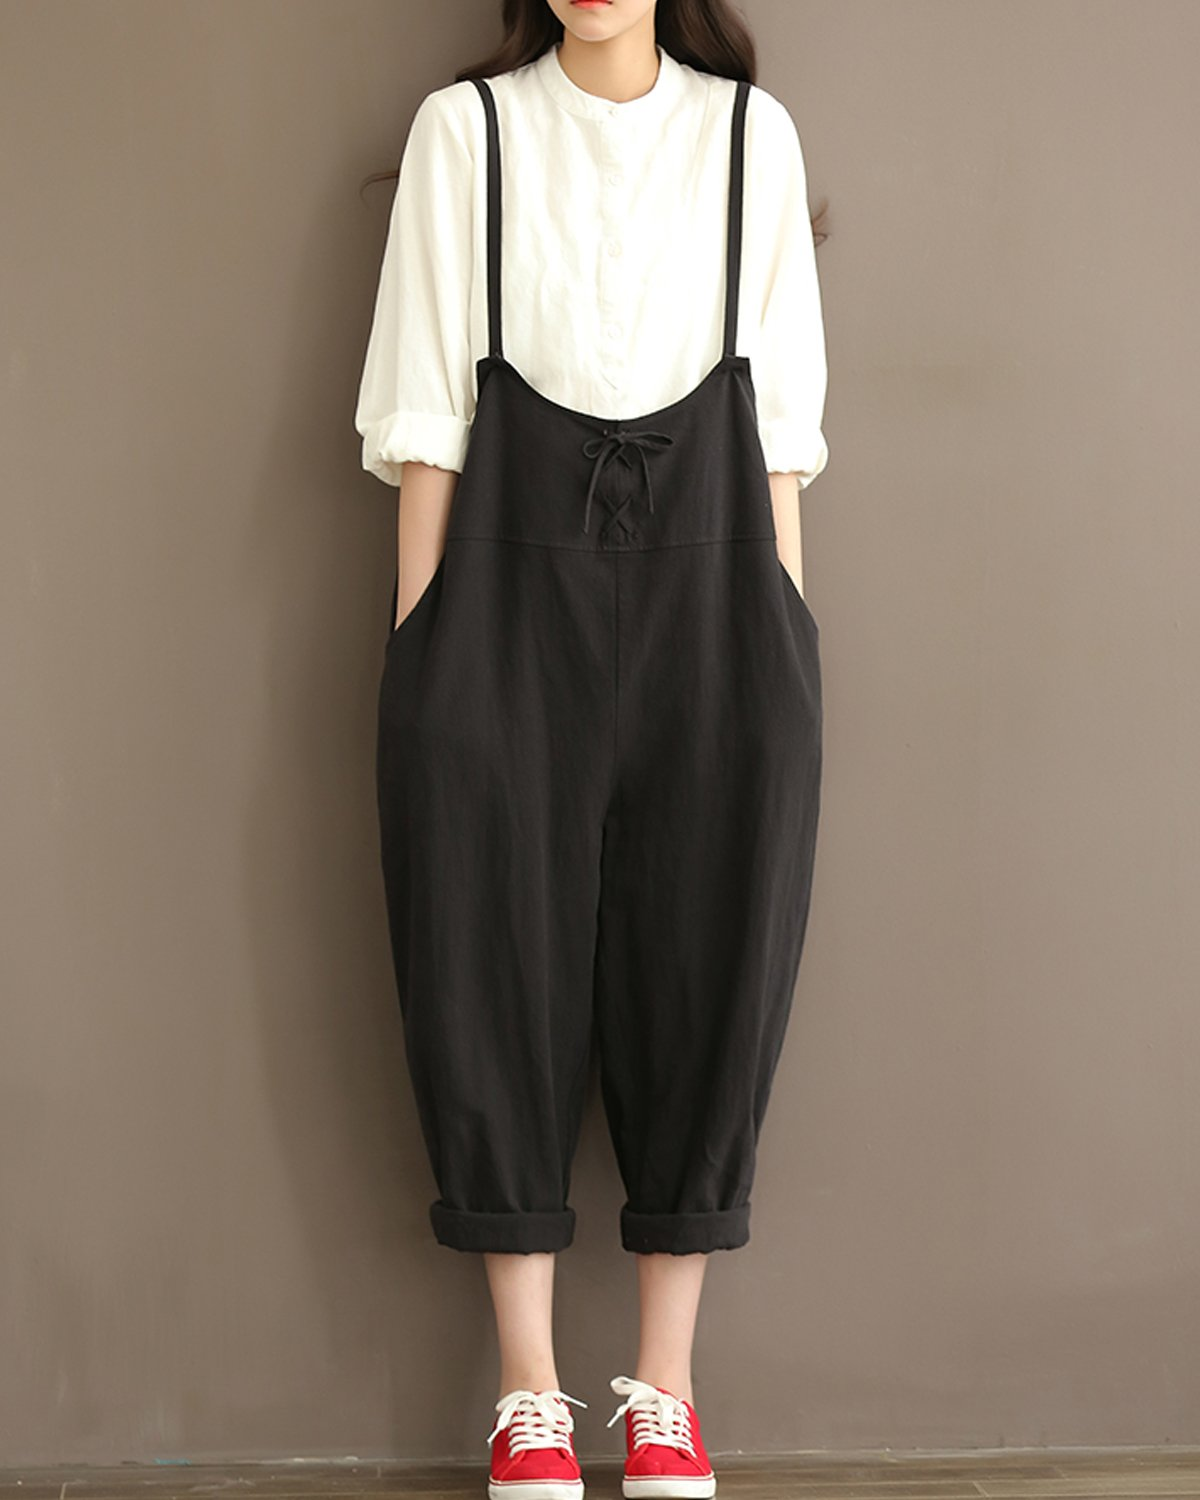 GZBQ Overalls for Women Casual Cotton Jumpsuit Plus Size Baggy Bib Wide Leg Overalls Pants Black 2XL by GZBQ (Image #4)